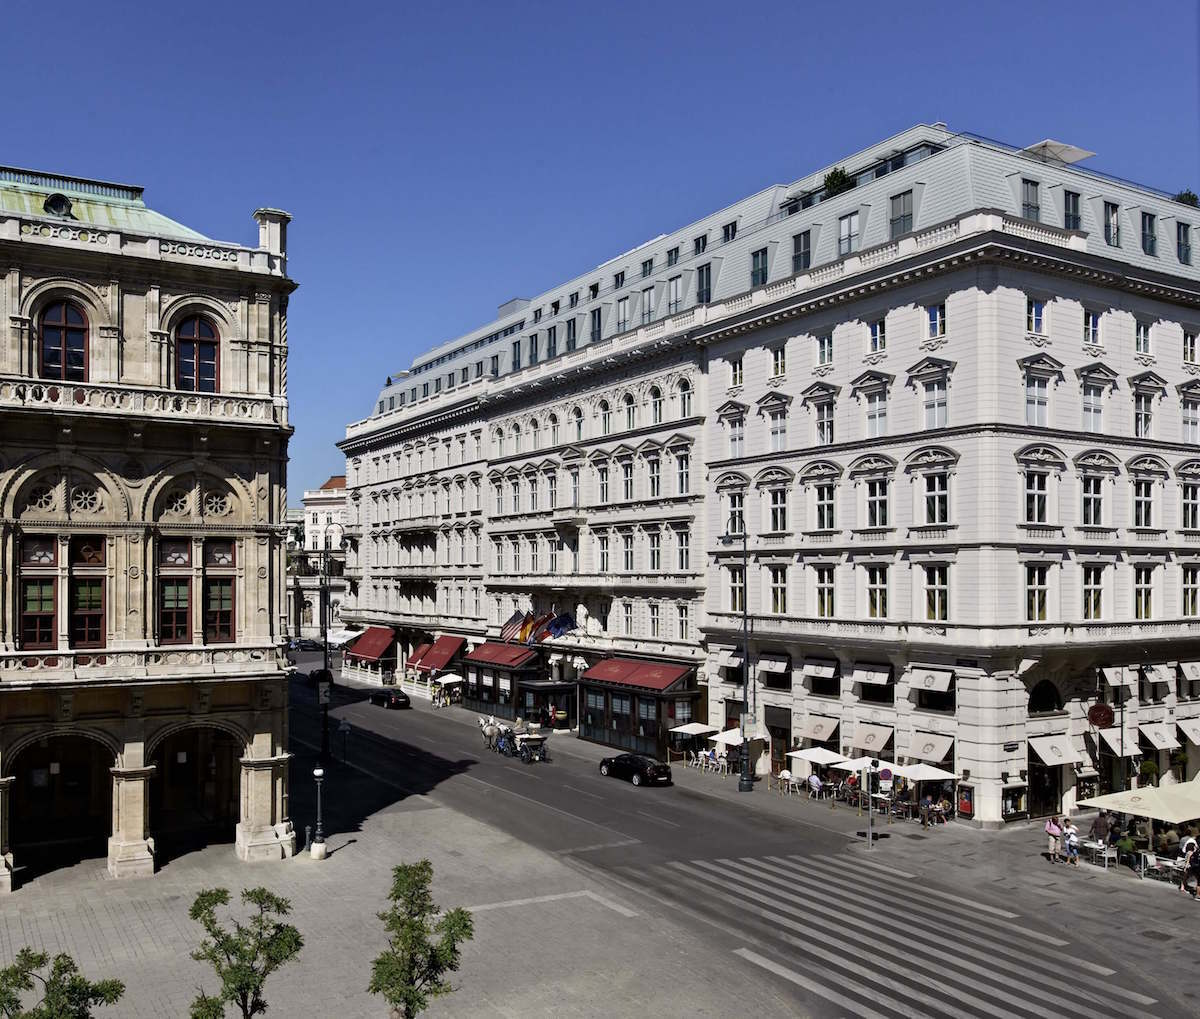 Hotel Sacher Wien, luxury hotel Vienna, top hotel Vienna, sacher torte, https://www.travelingwellforless.com